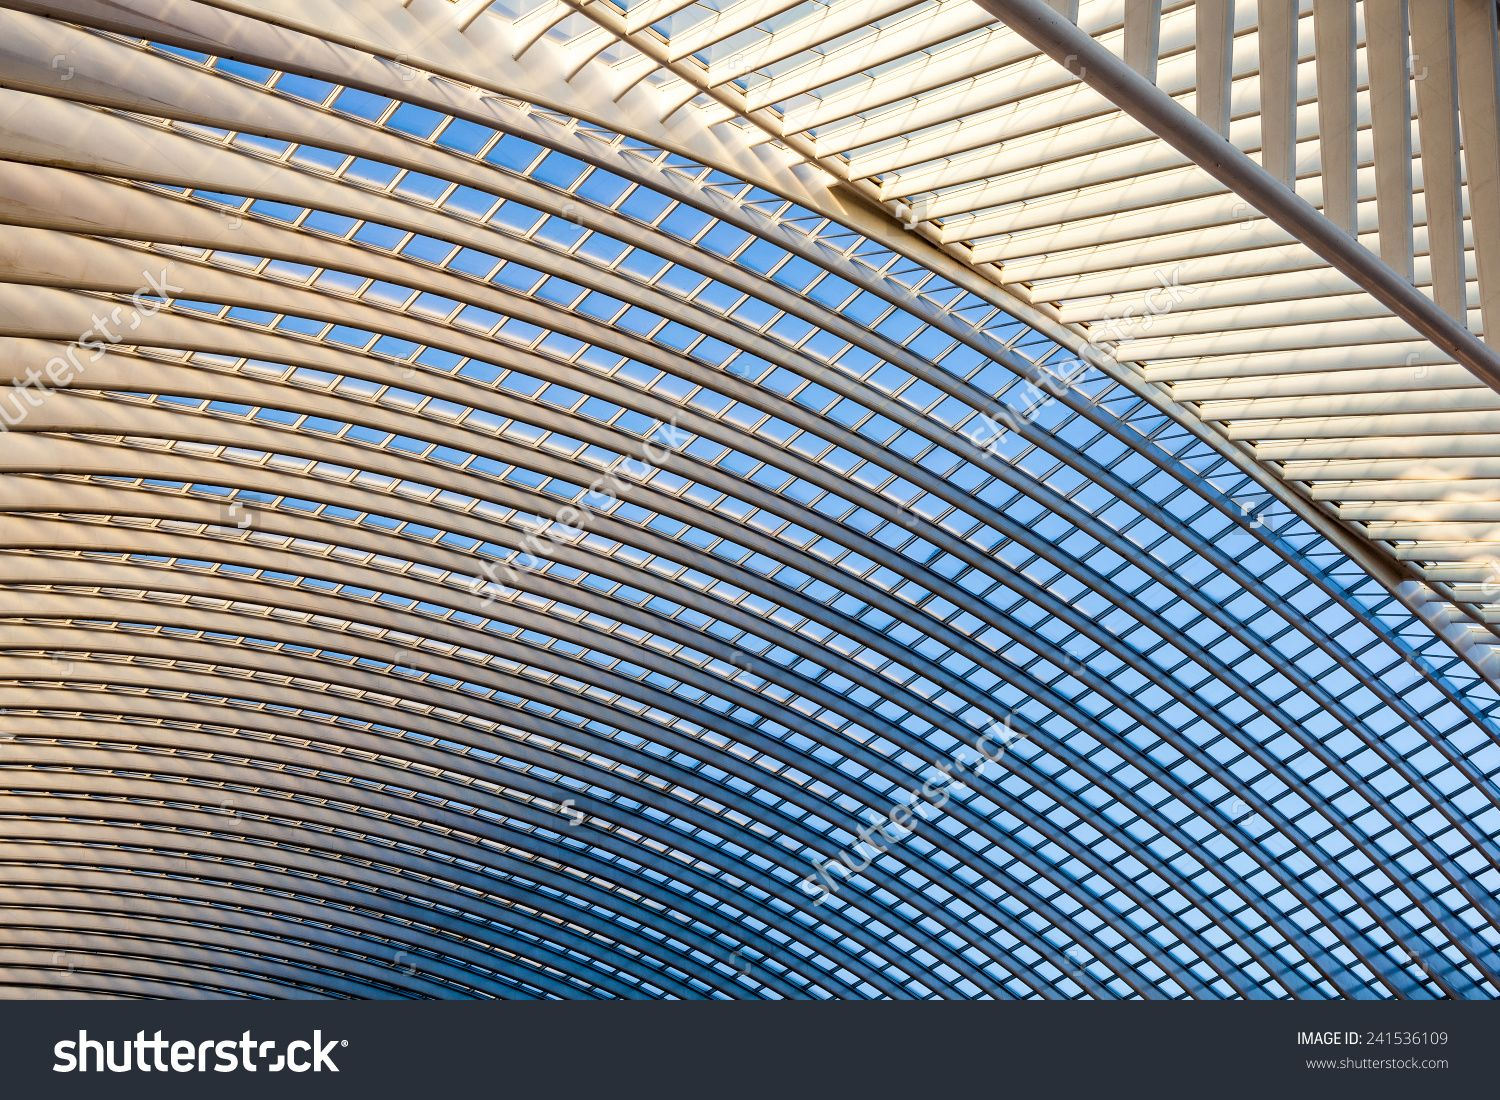 An Structure Of A Roof Over The Mall Zdjęcie stockowe 241536109 : Shutterstock